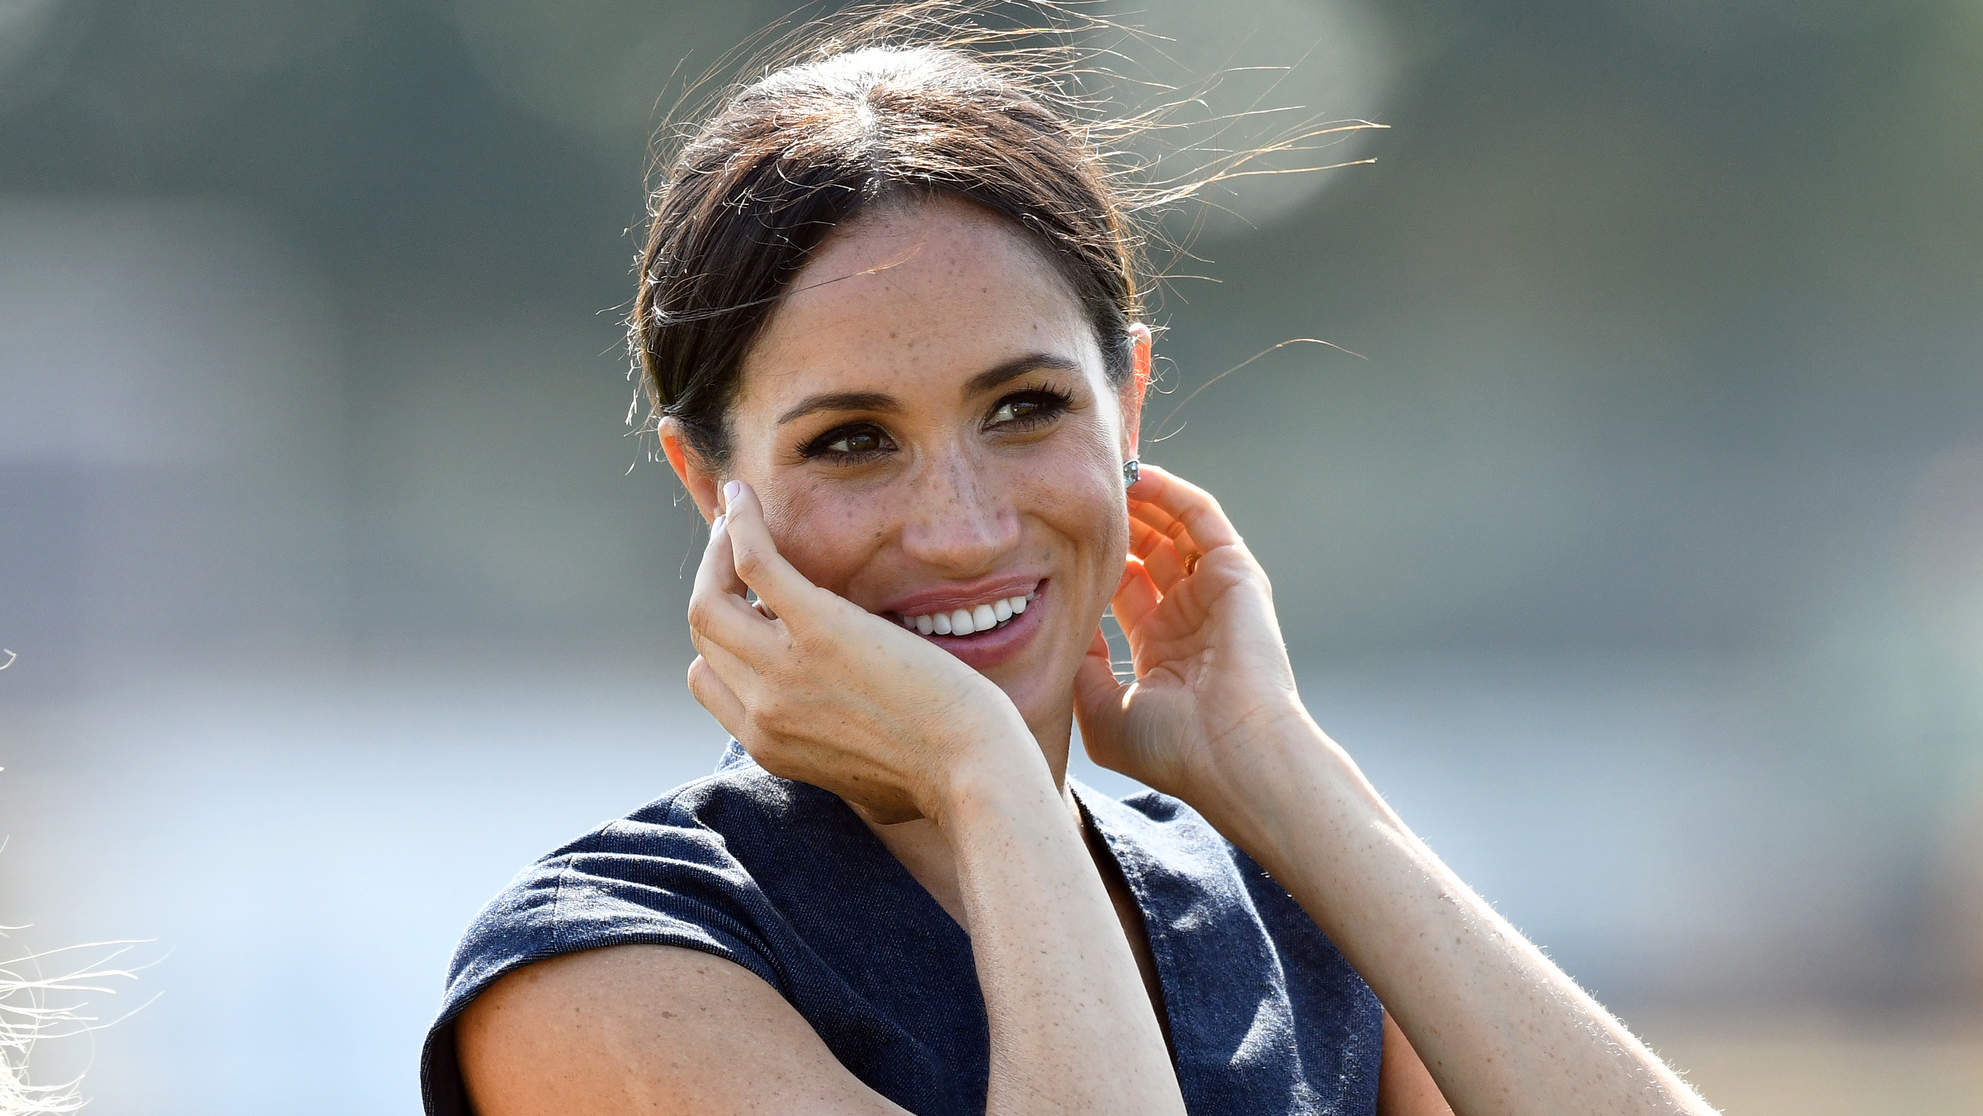 Meghan Markle Says Pregnancy Feels 'Like Jet Lag' and Reveals She Got Up at 4:30 a.m. to Do Yoga